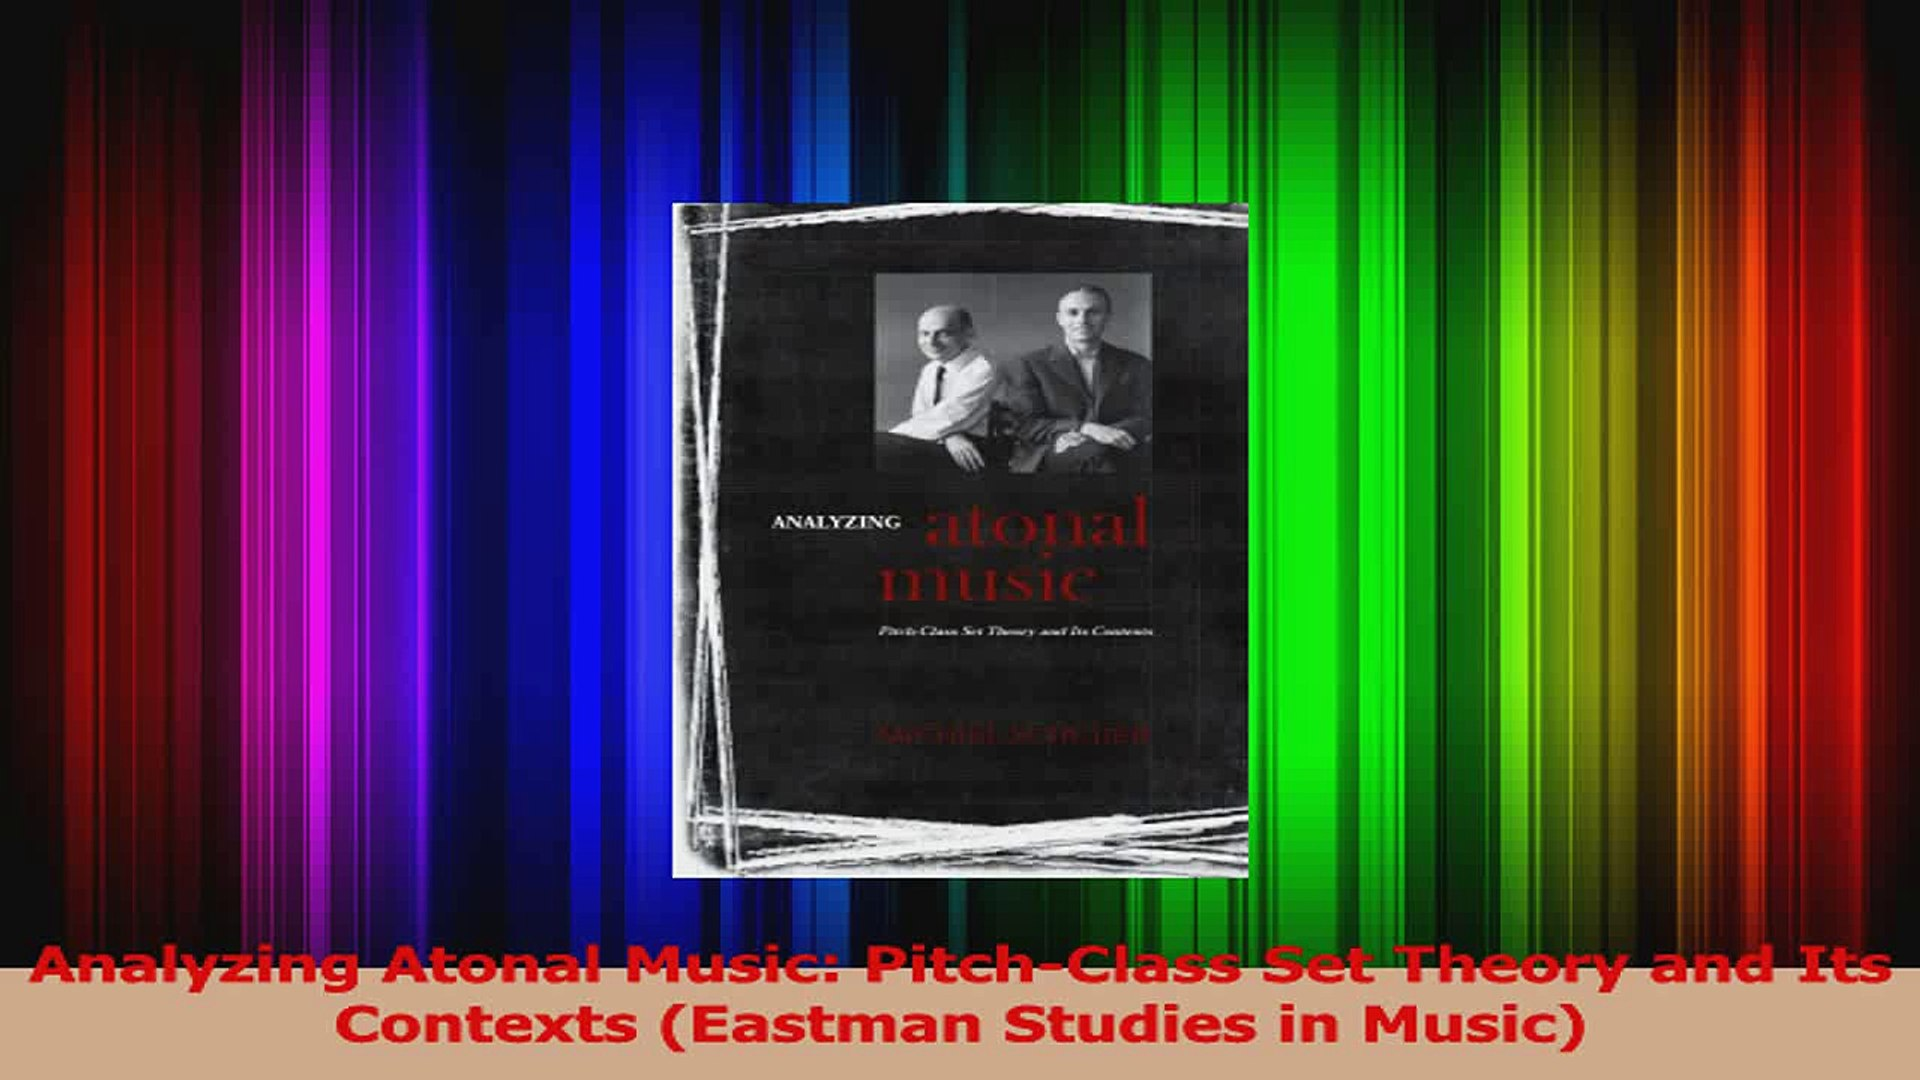 PDF Download  Analyzing Atonal Music PitchClass Set Theory and Its Contexts Eastman Studies in Music